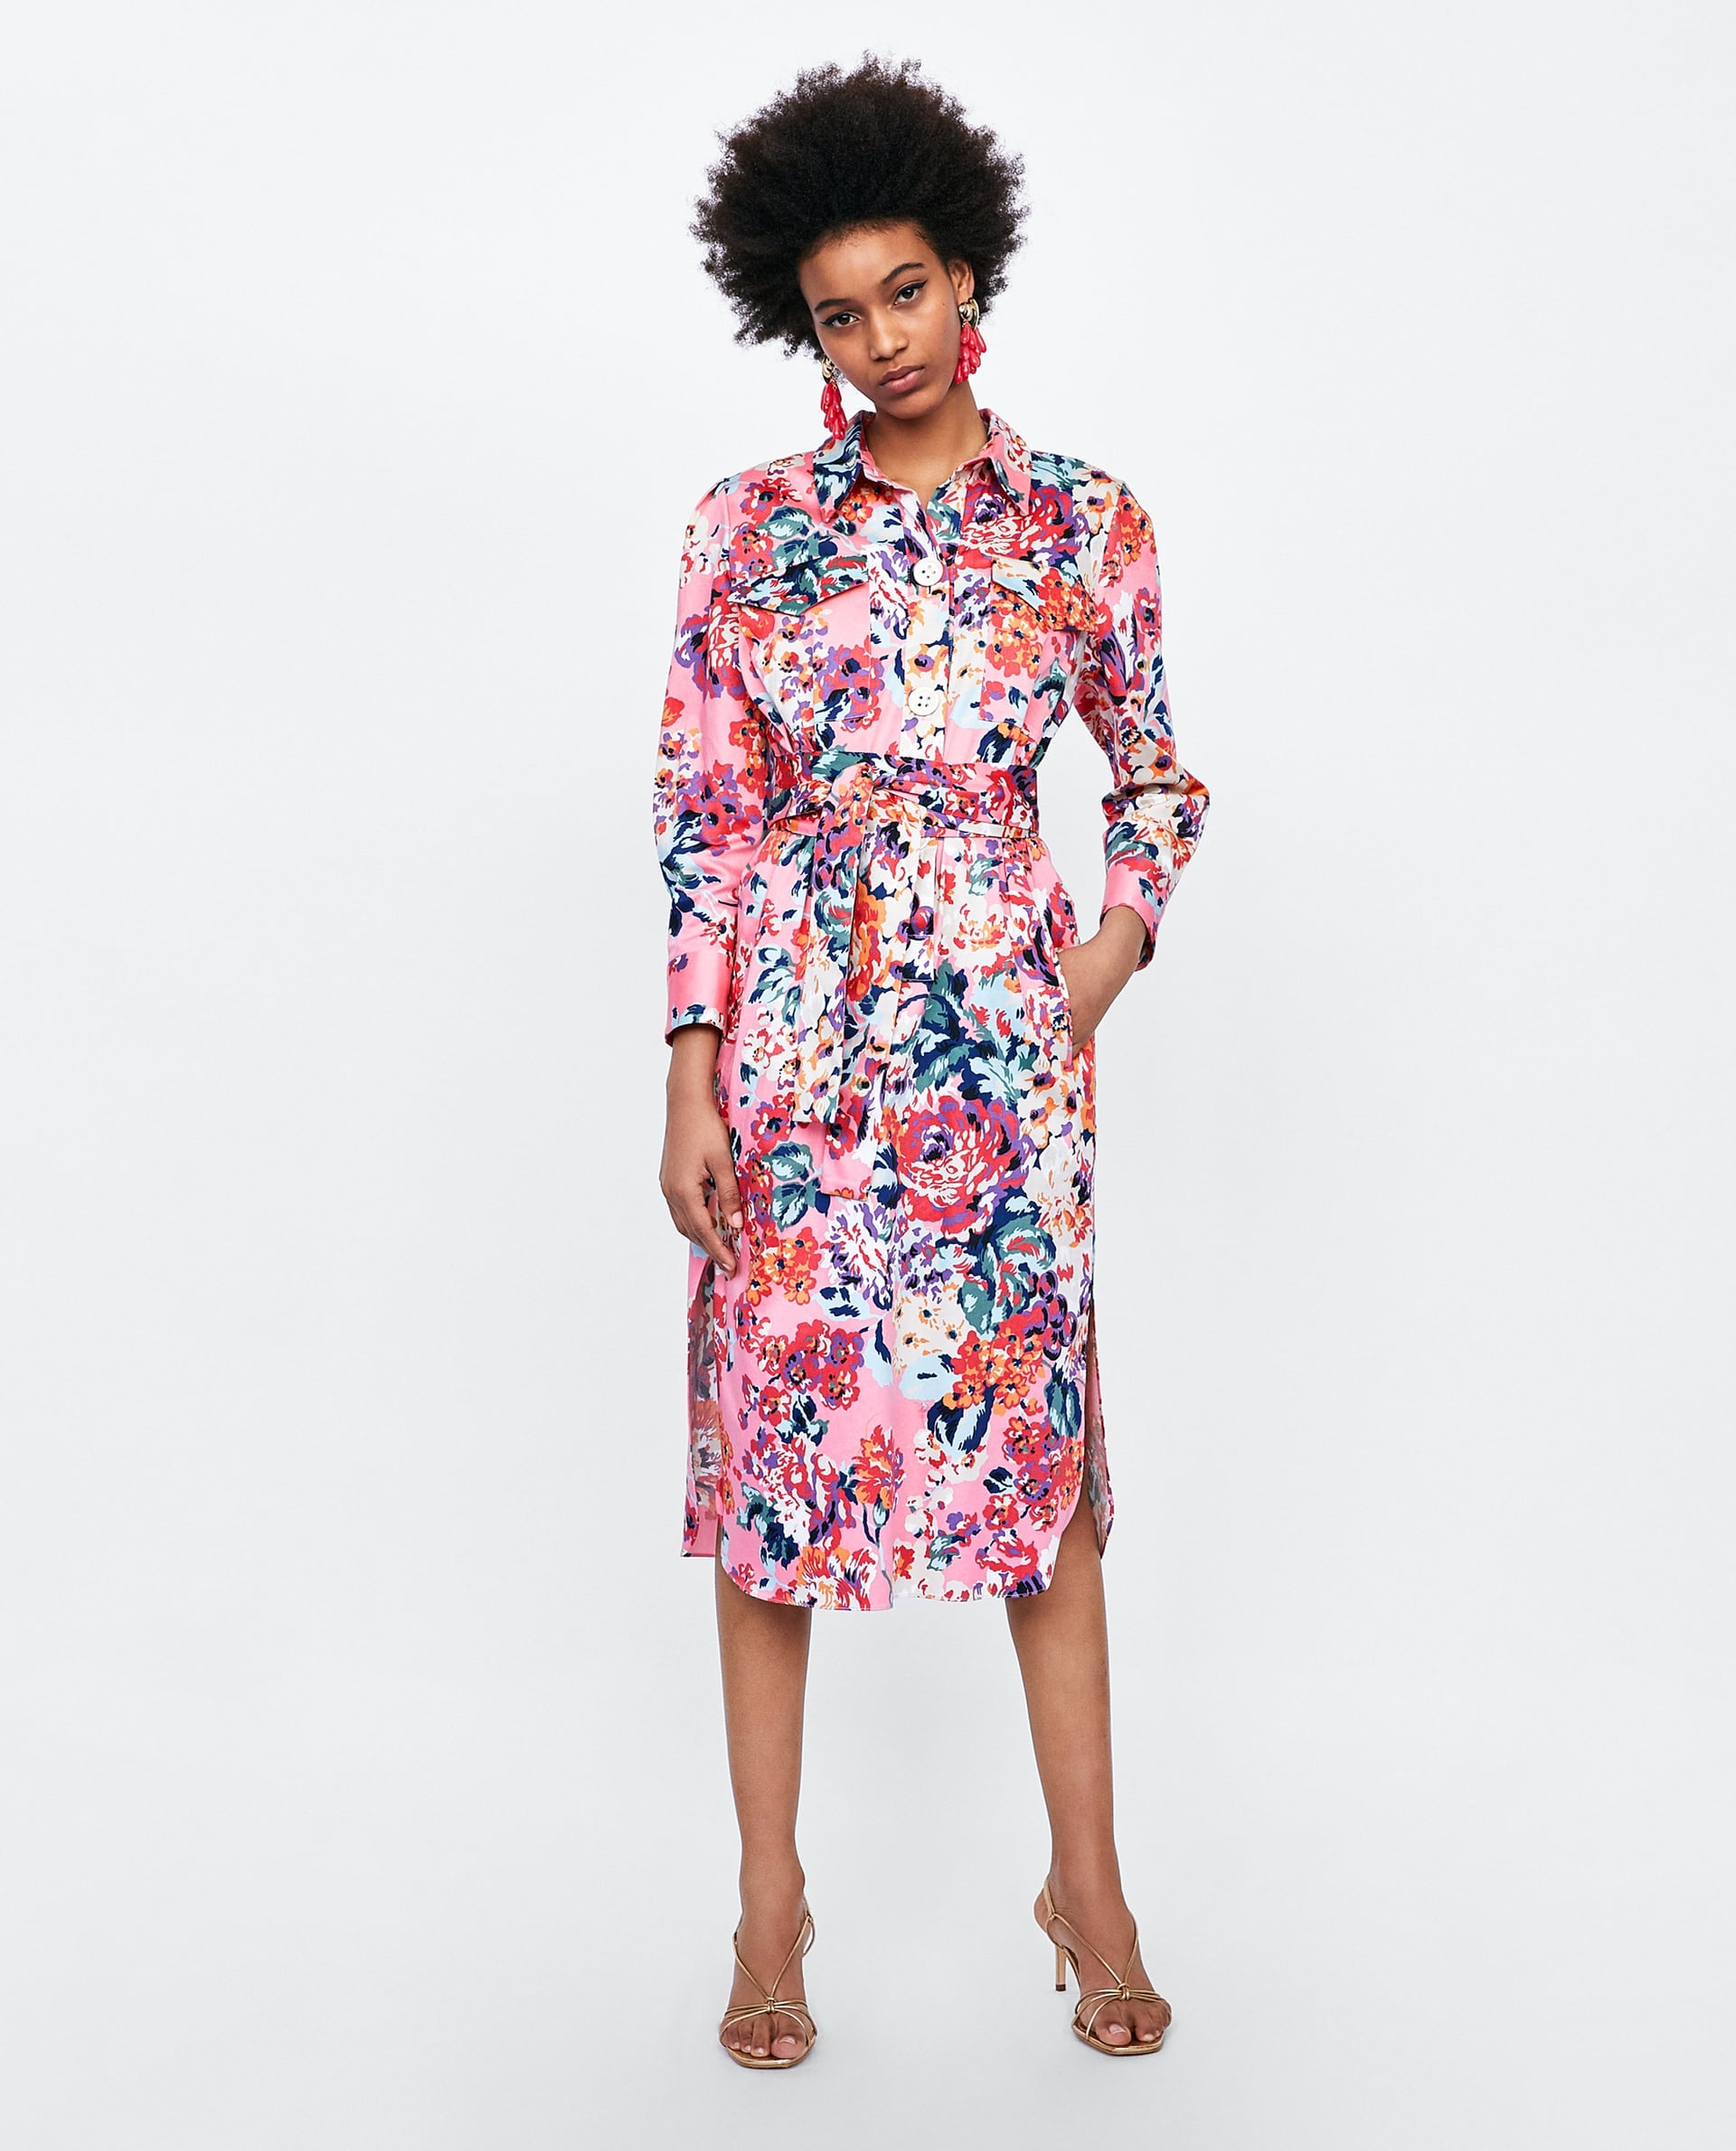 845307a457 Zara Floral Print Shirt Dress   Hold Up — Did You See the Practical ...